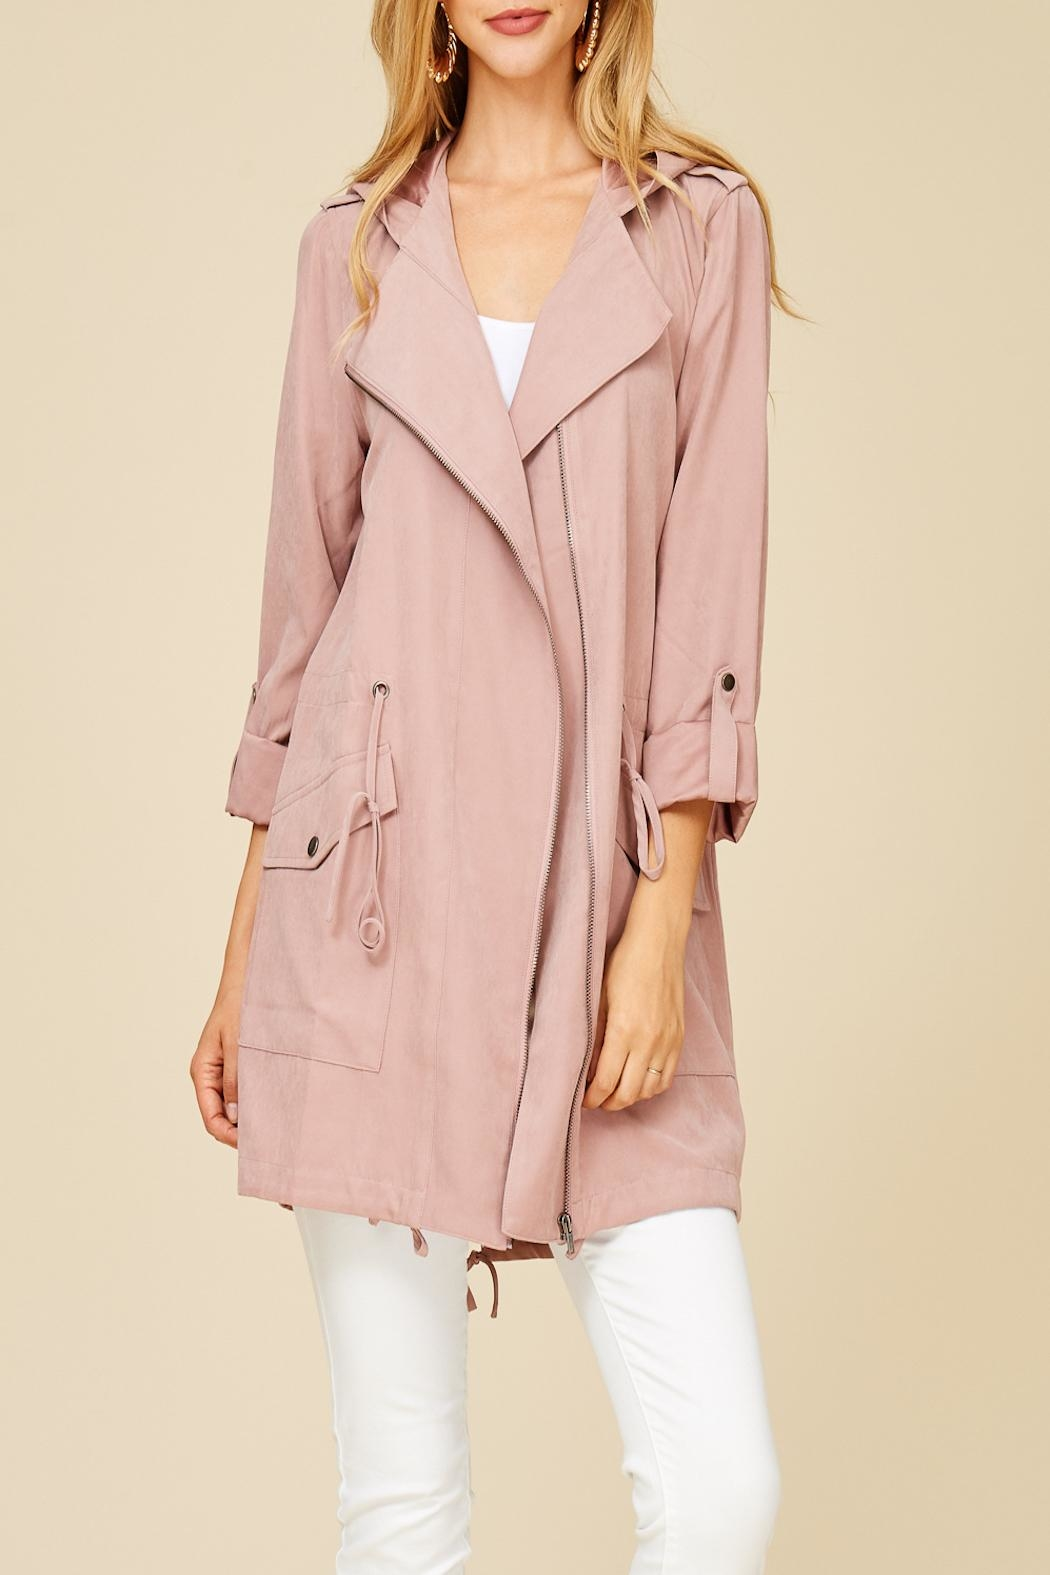 Apricot Lane St. Cloud Blushing For You Coat - Front Full Image